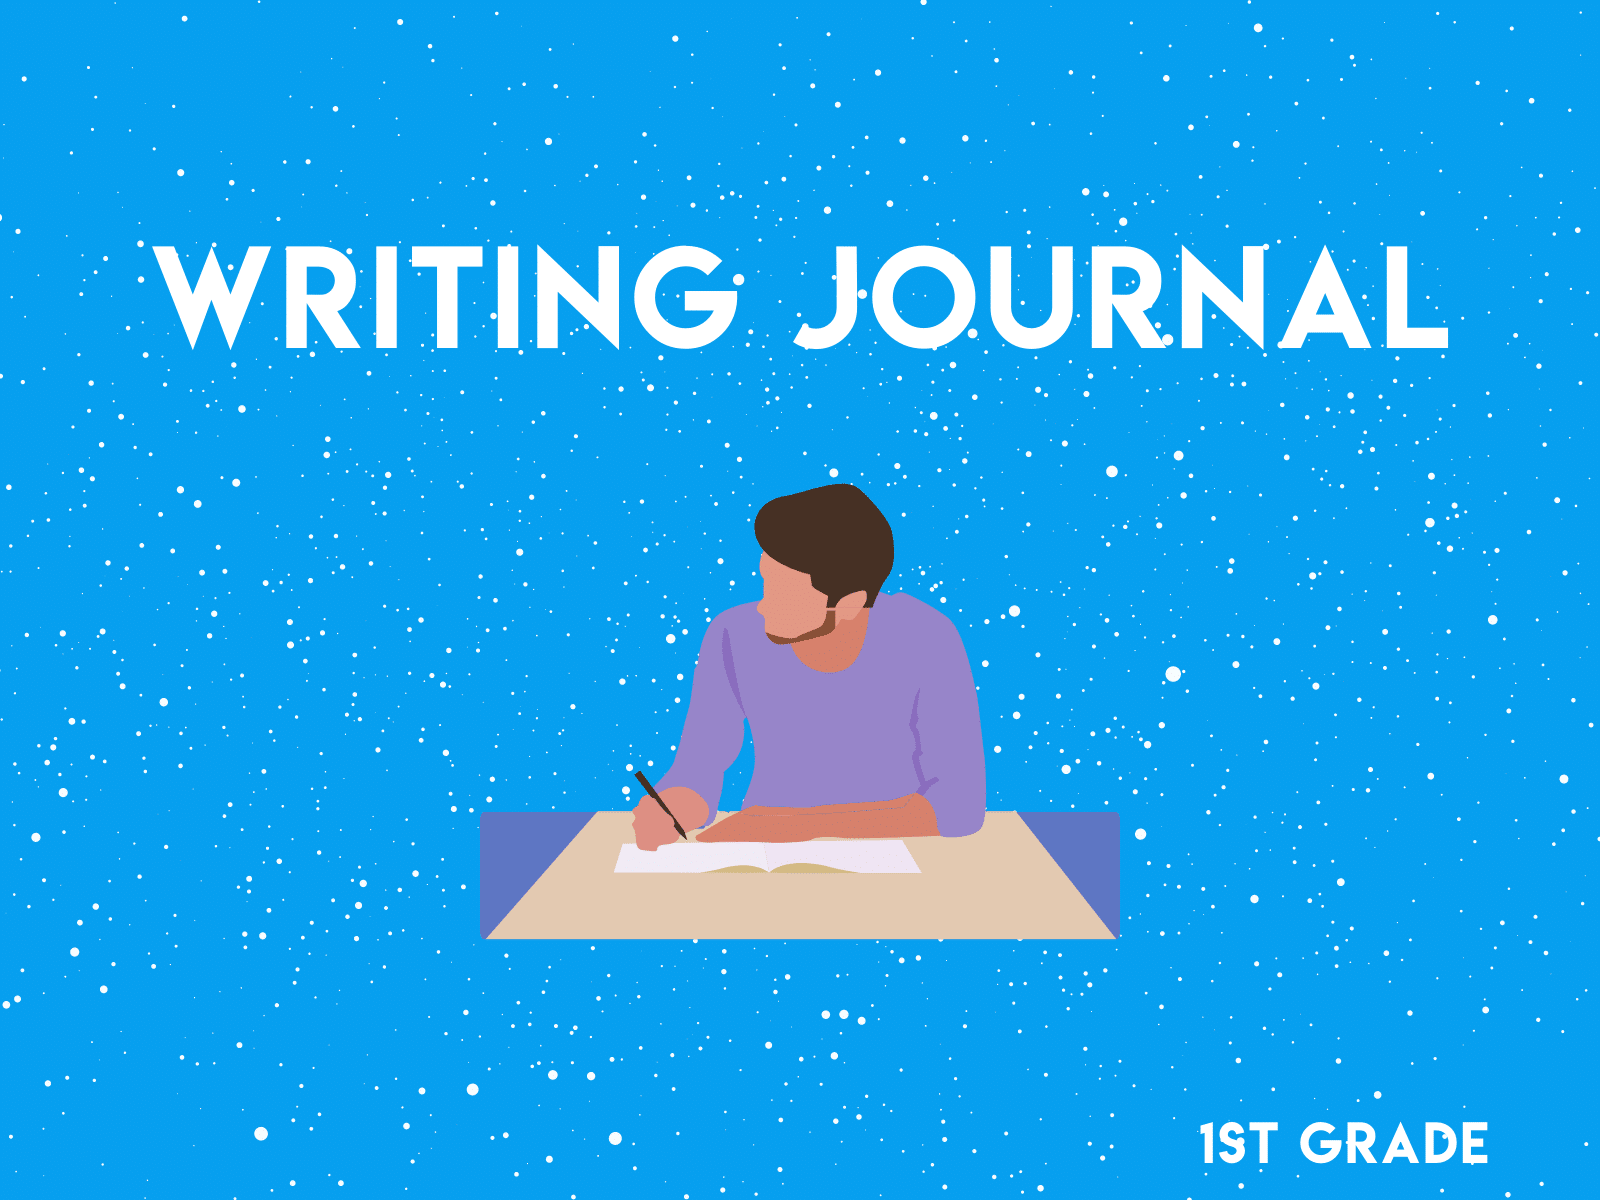 First graders can practice narrative, opinion, informative, descriptive, and how-to writing with this free first grade writing prompt worksheet.